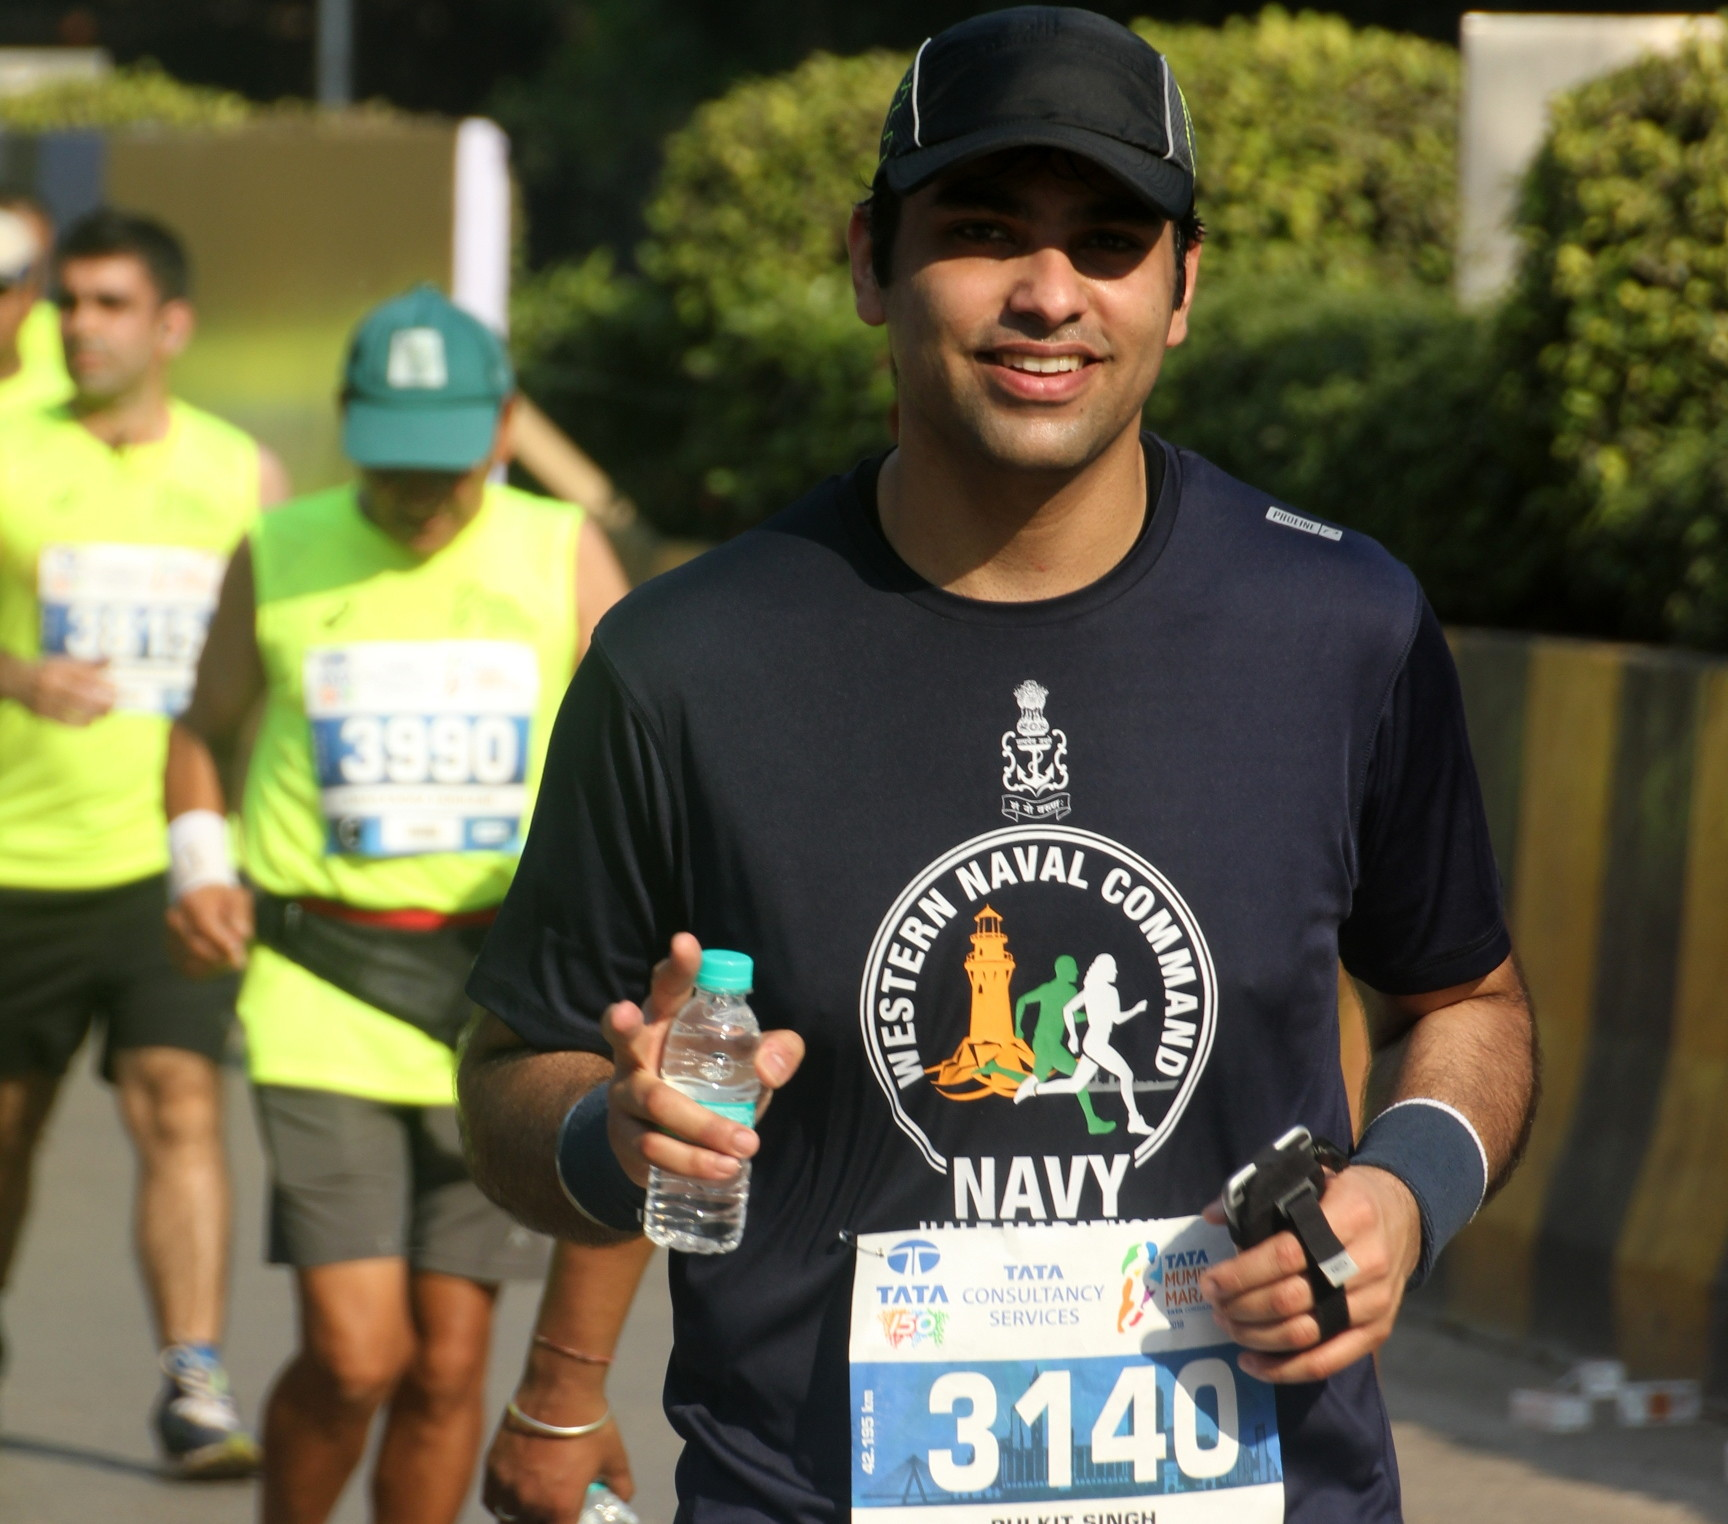 Global Run Challenge Profile: Pulkit Singh went out one morning at 3:30am to escape the pressure of his job and started running